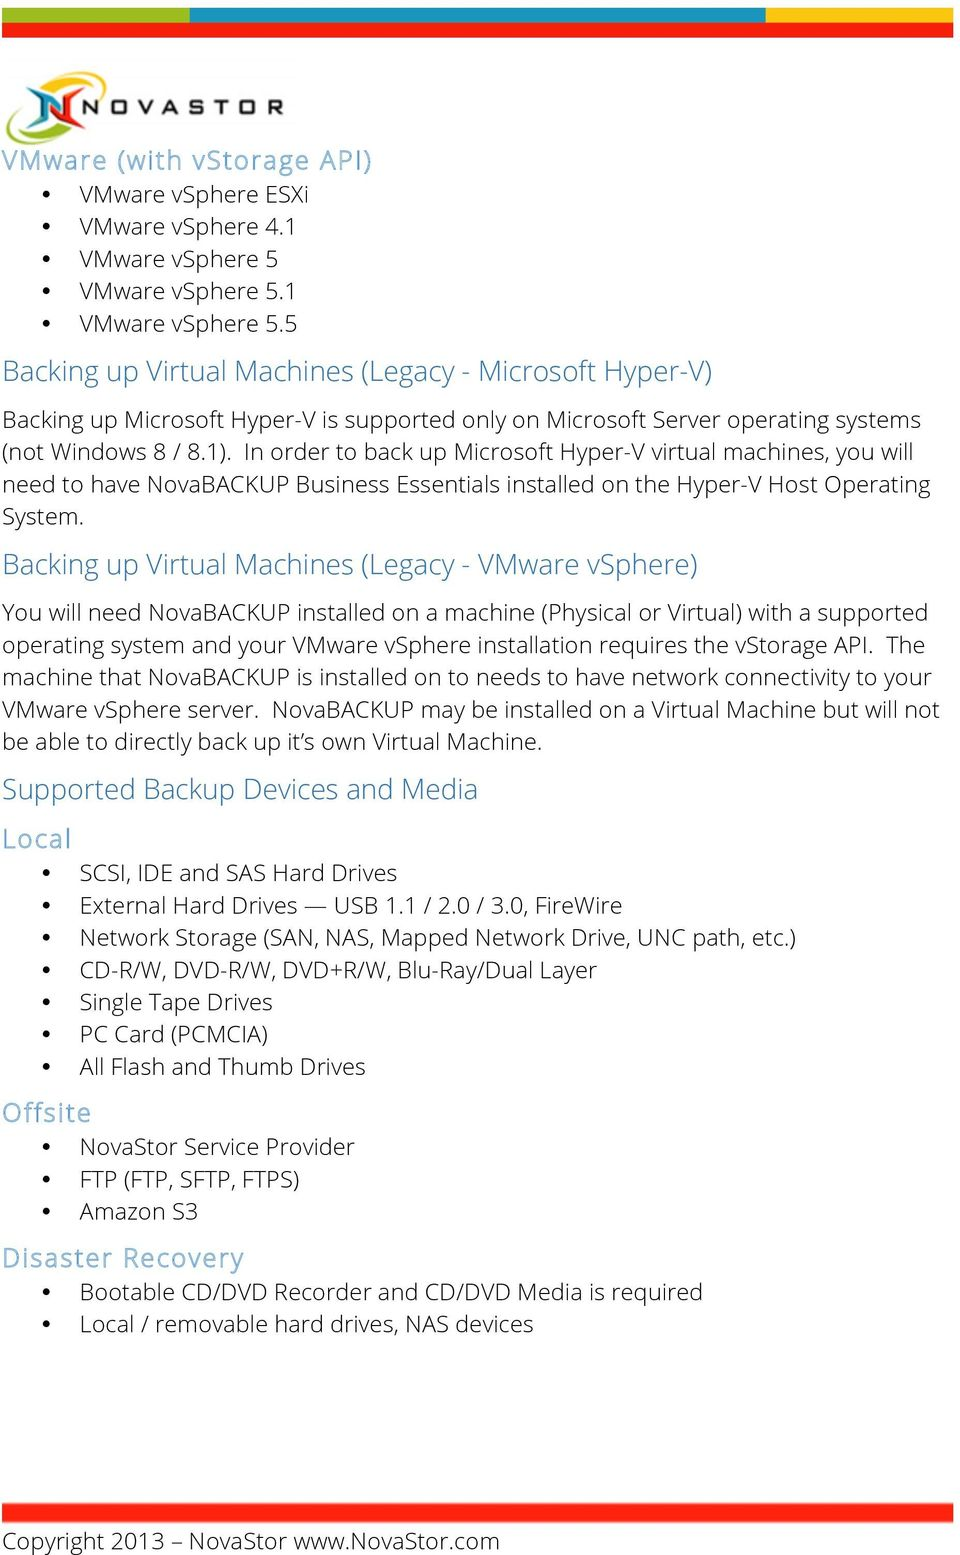 1). In order to back up Microsoft Hyper-V virtual machines, you will need to have NovaBACKUP Business Essentials installed on the Hyper-V Host Operating System.